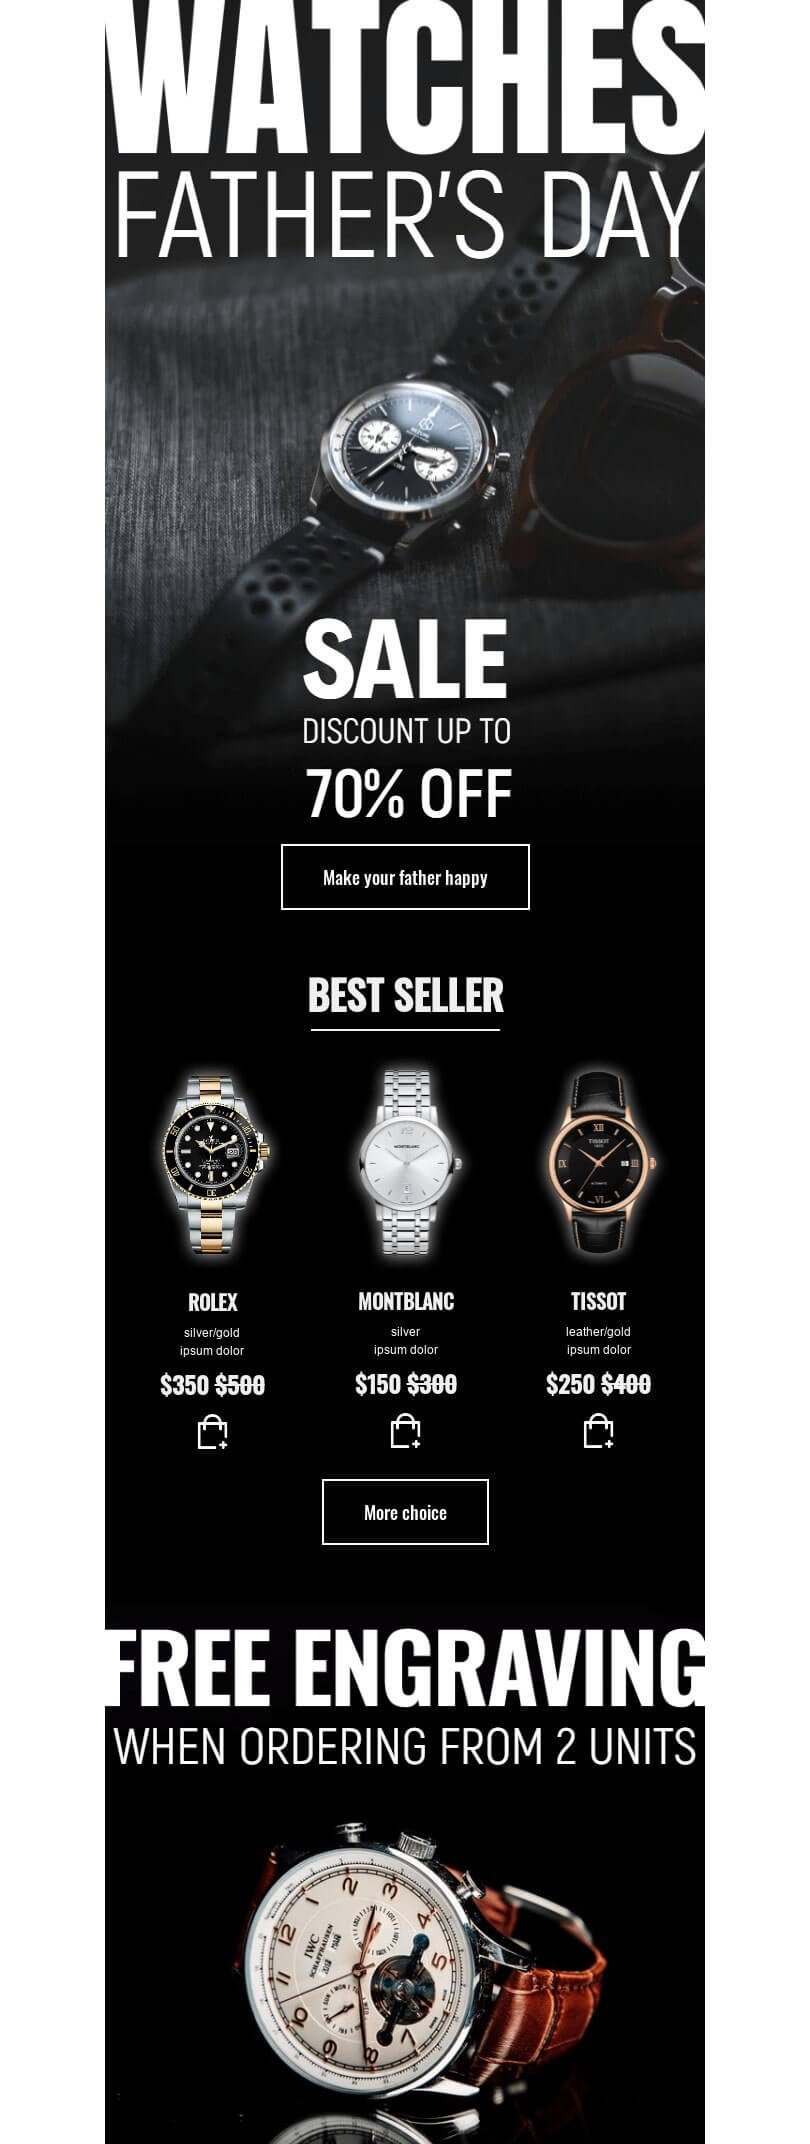 Father's Day Email Template «Sale of watches» for Jewelry industry desktop view